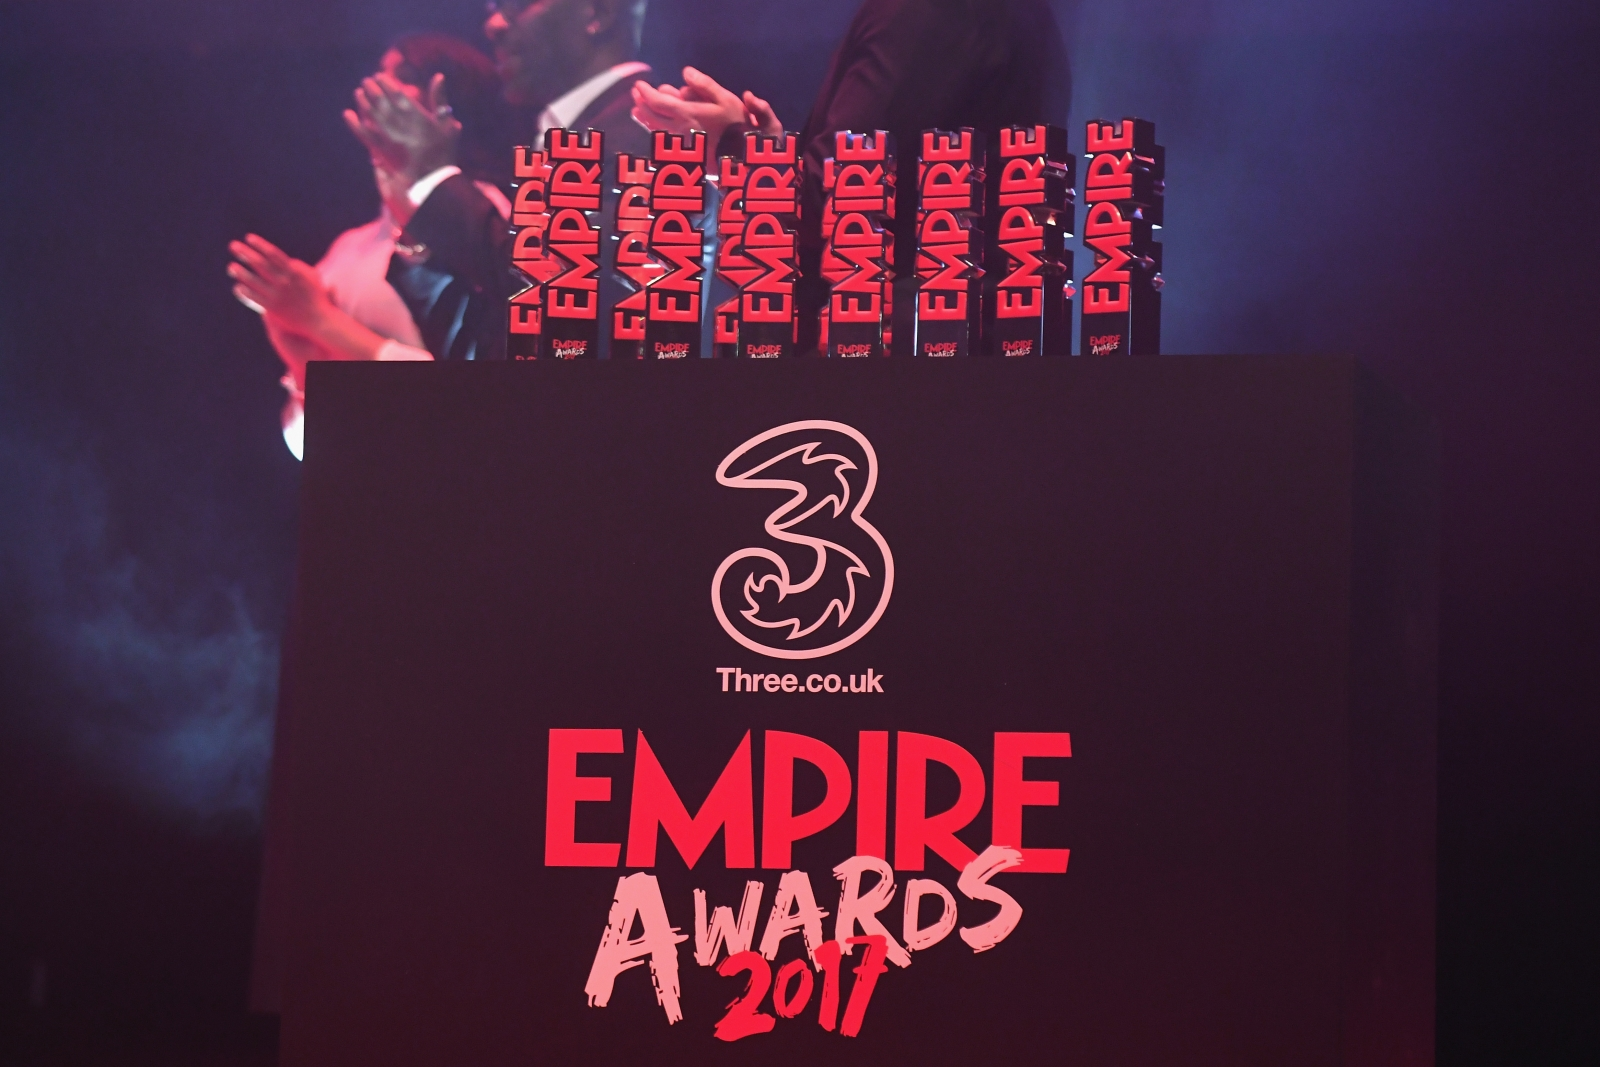 Empire Awards 2017